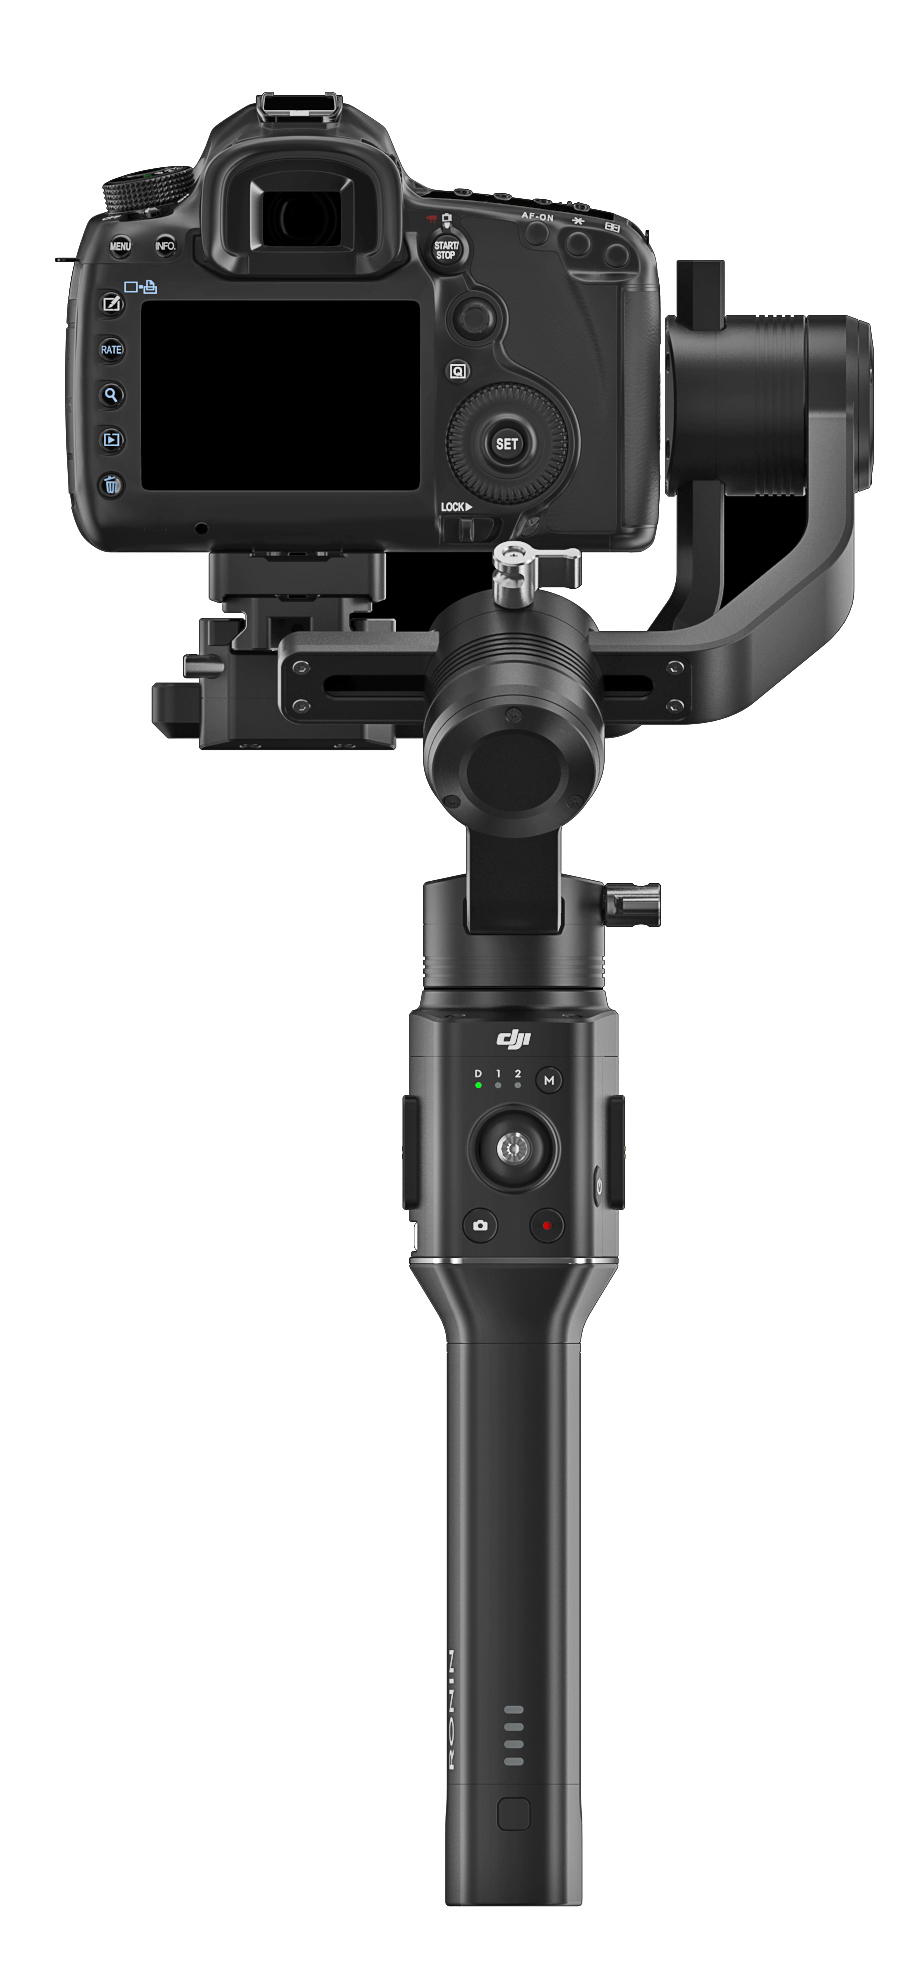 DJI Ronin-S and Osmo Mobile 2 - The American Society of Cinematographers